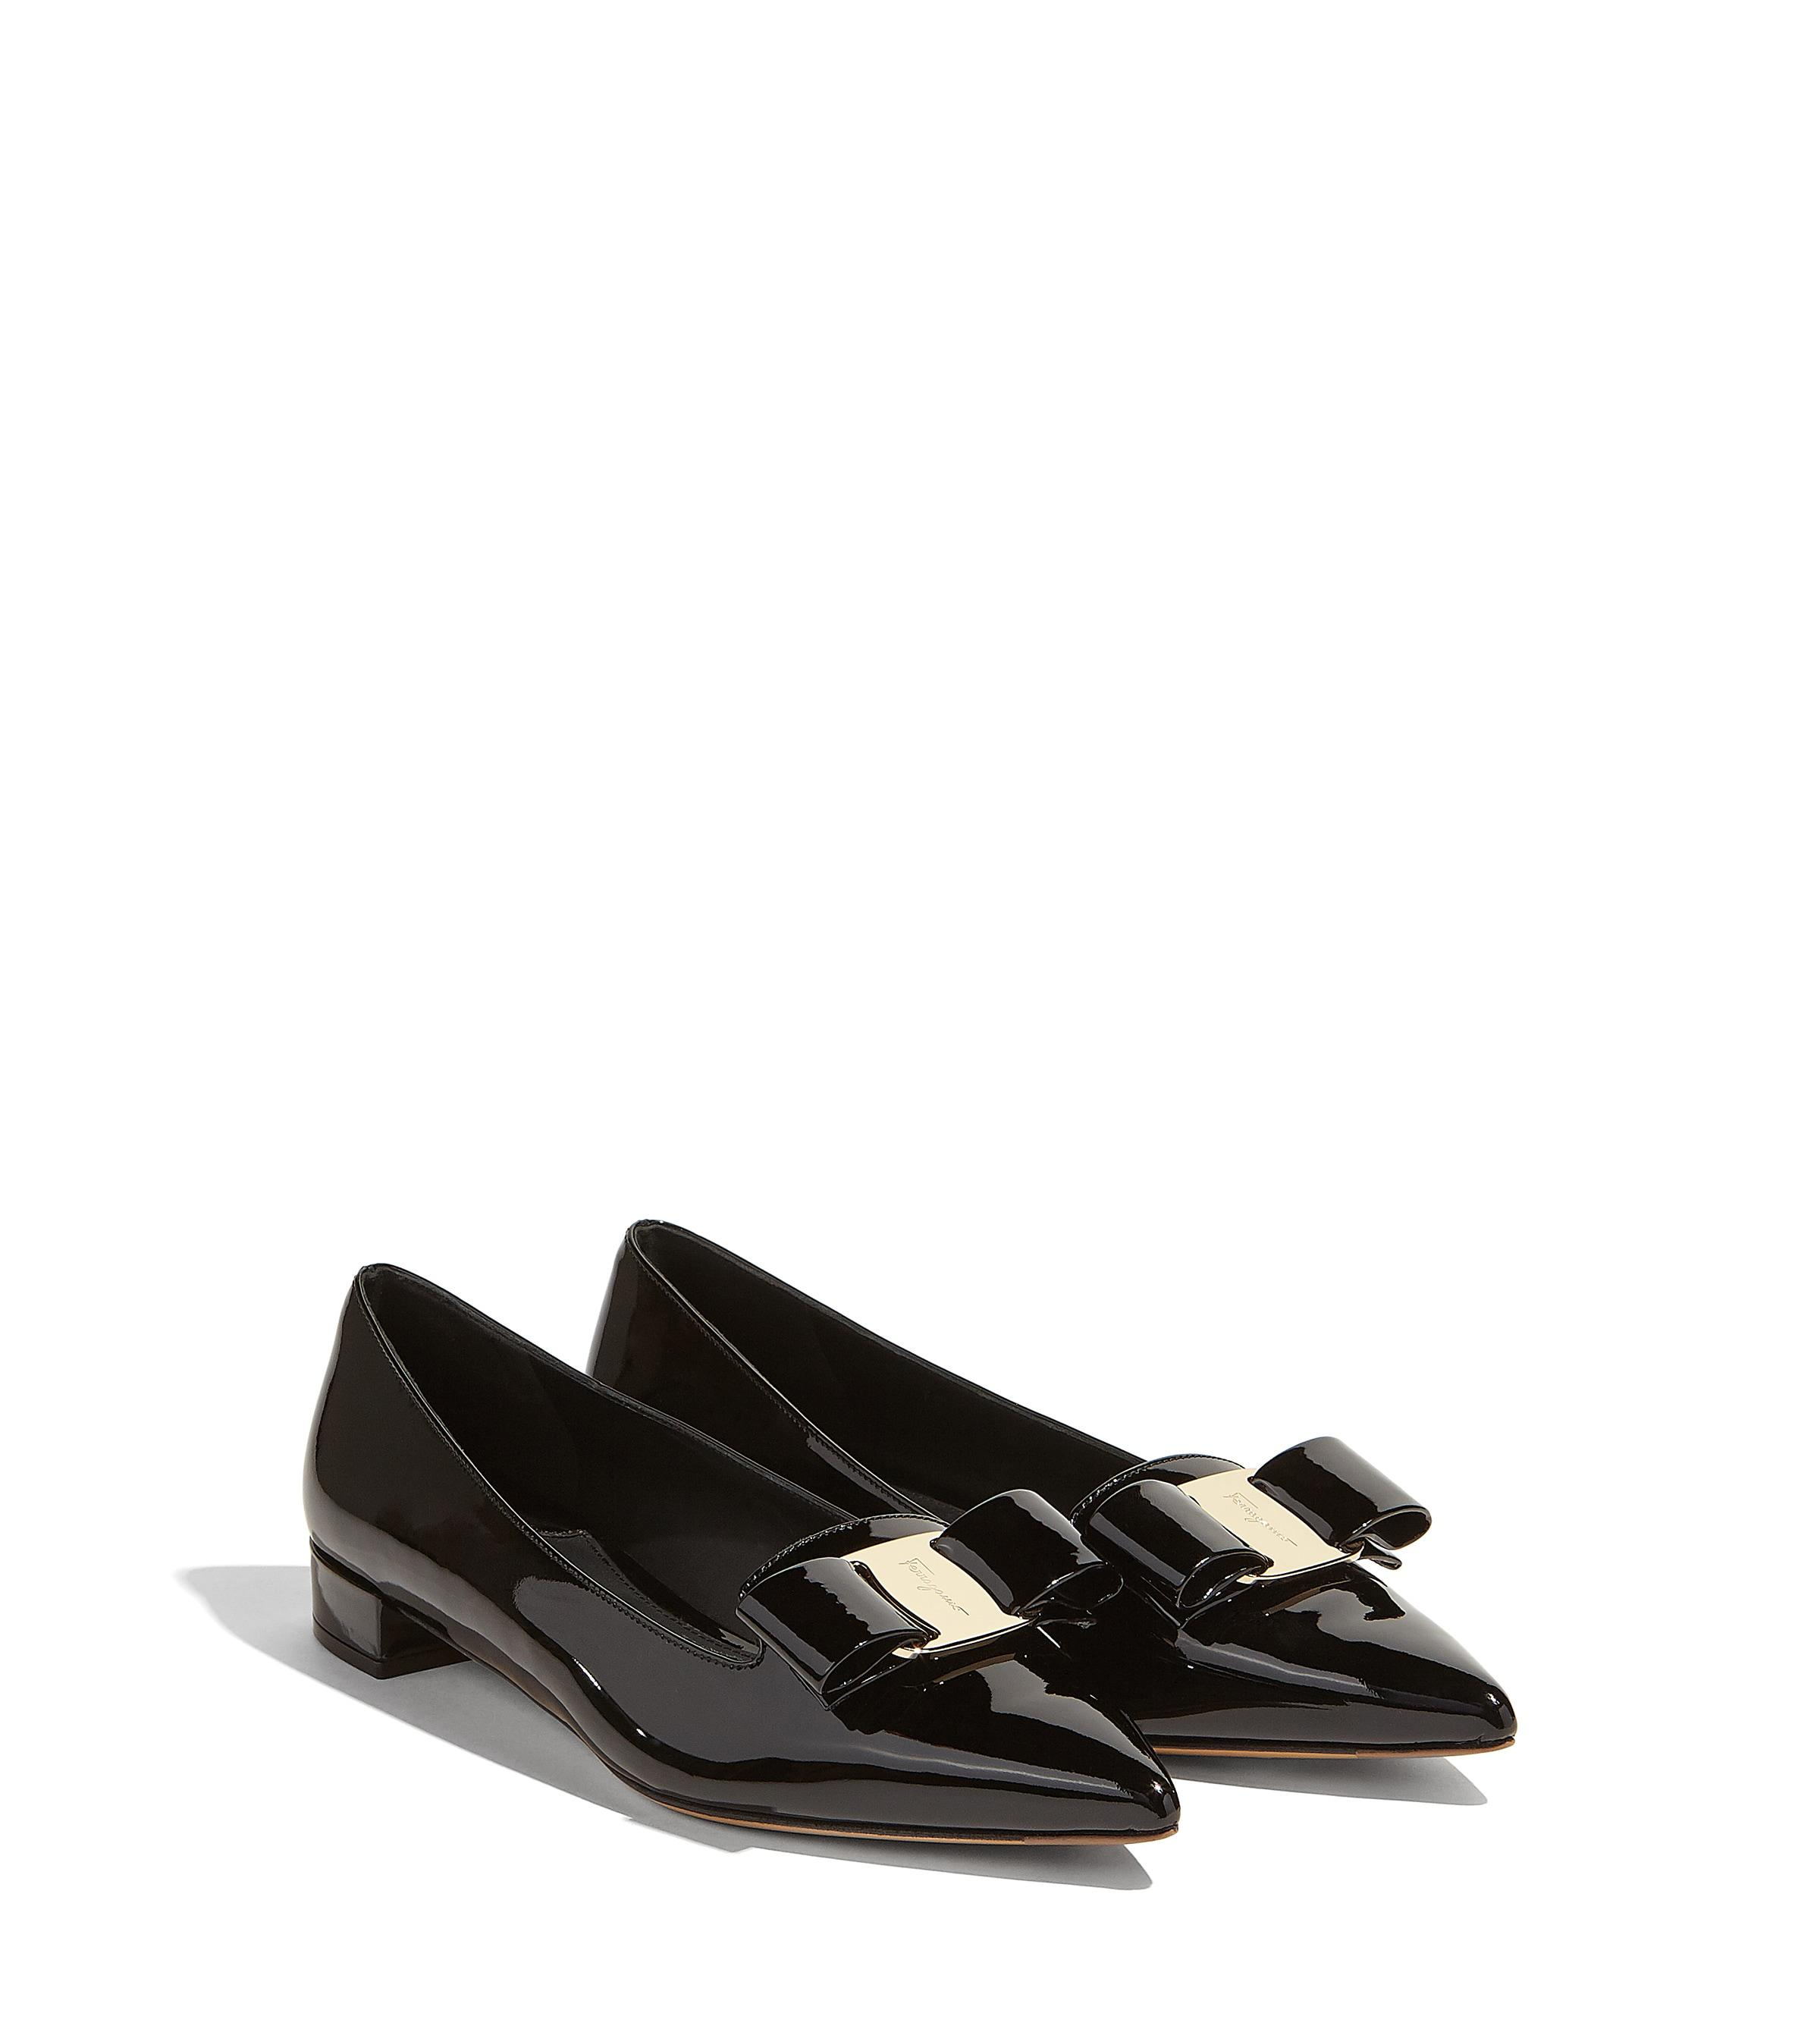 d59968327ad4 Lyst - Ferragamo Big Vara Bow Pump Shoe in Black